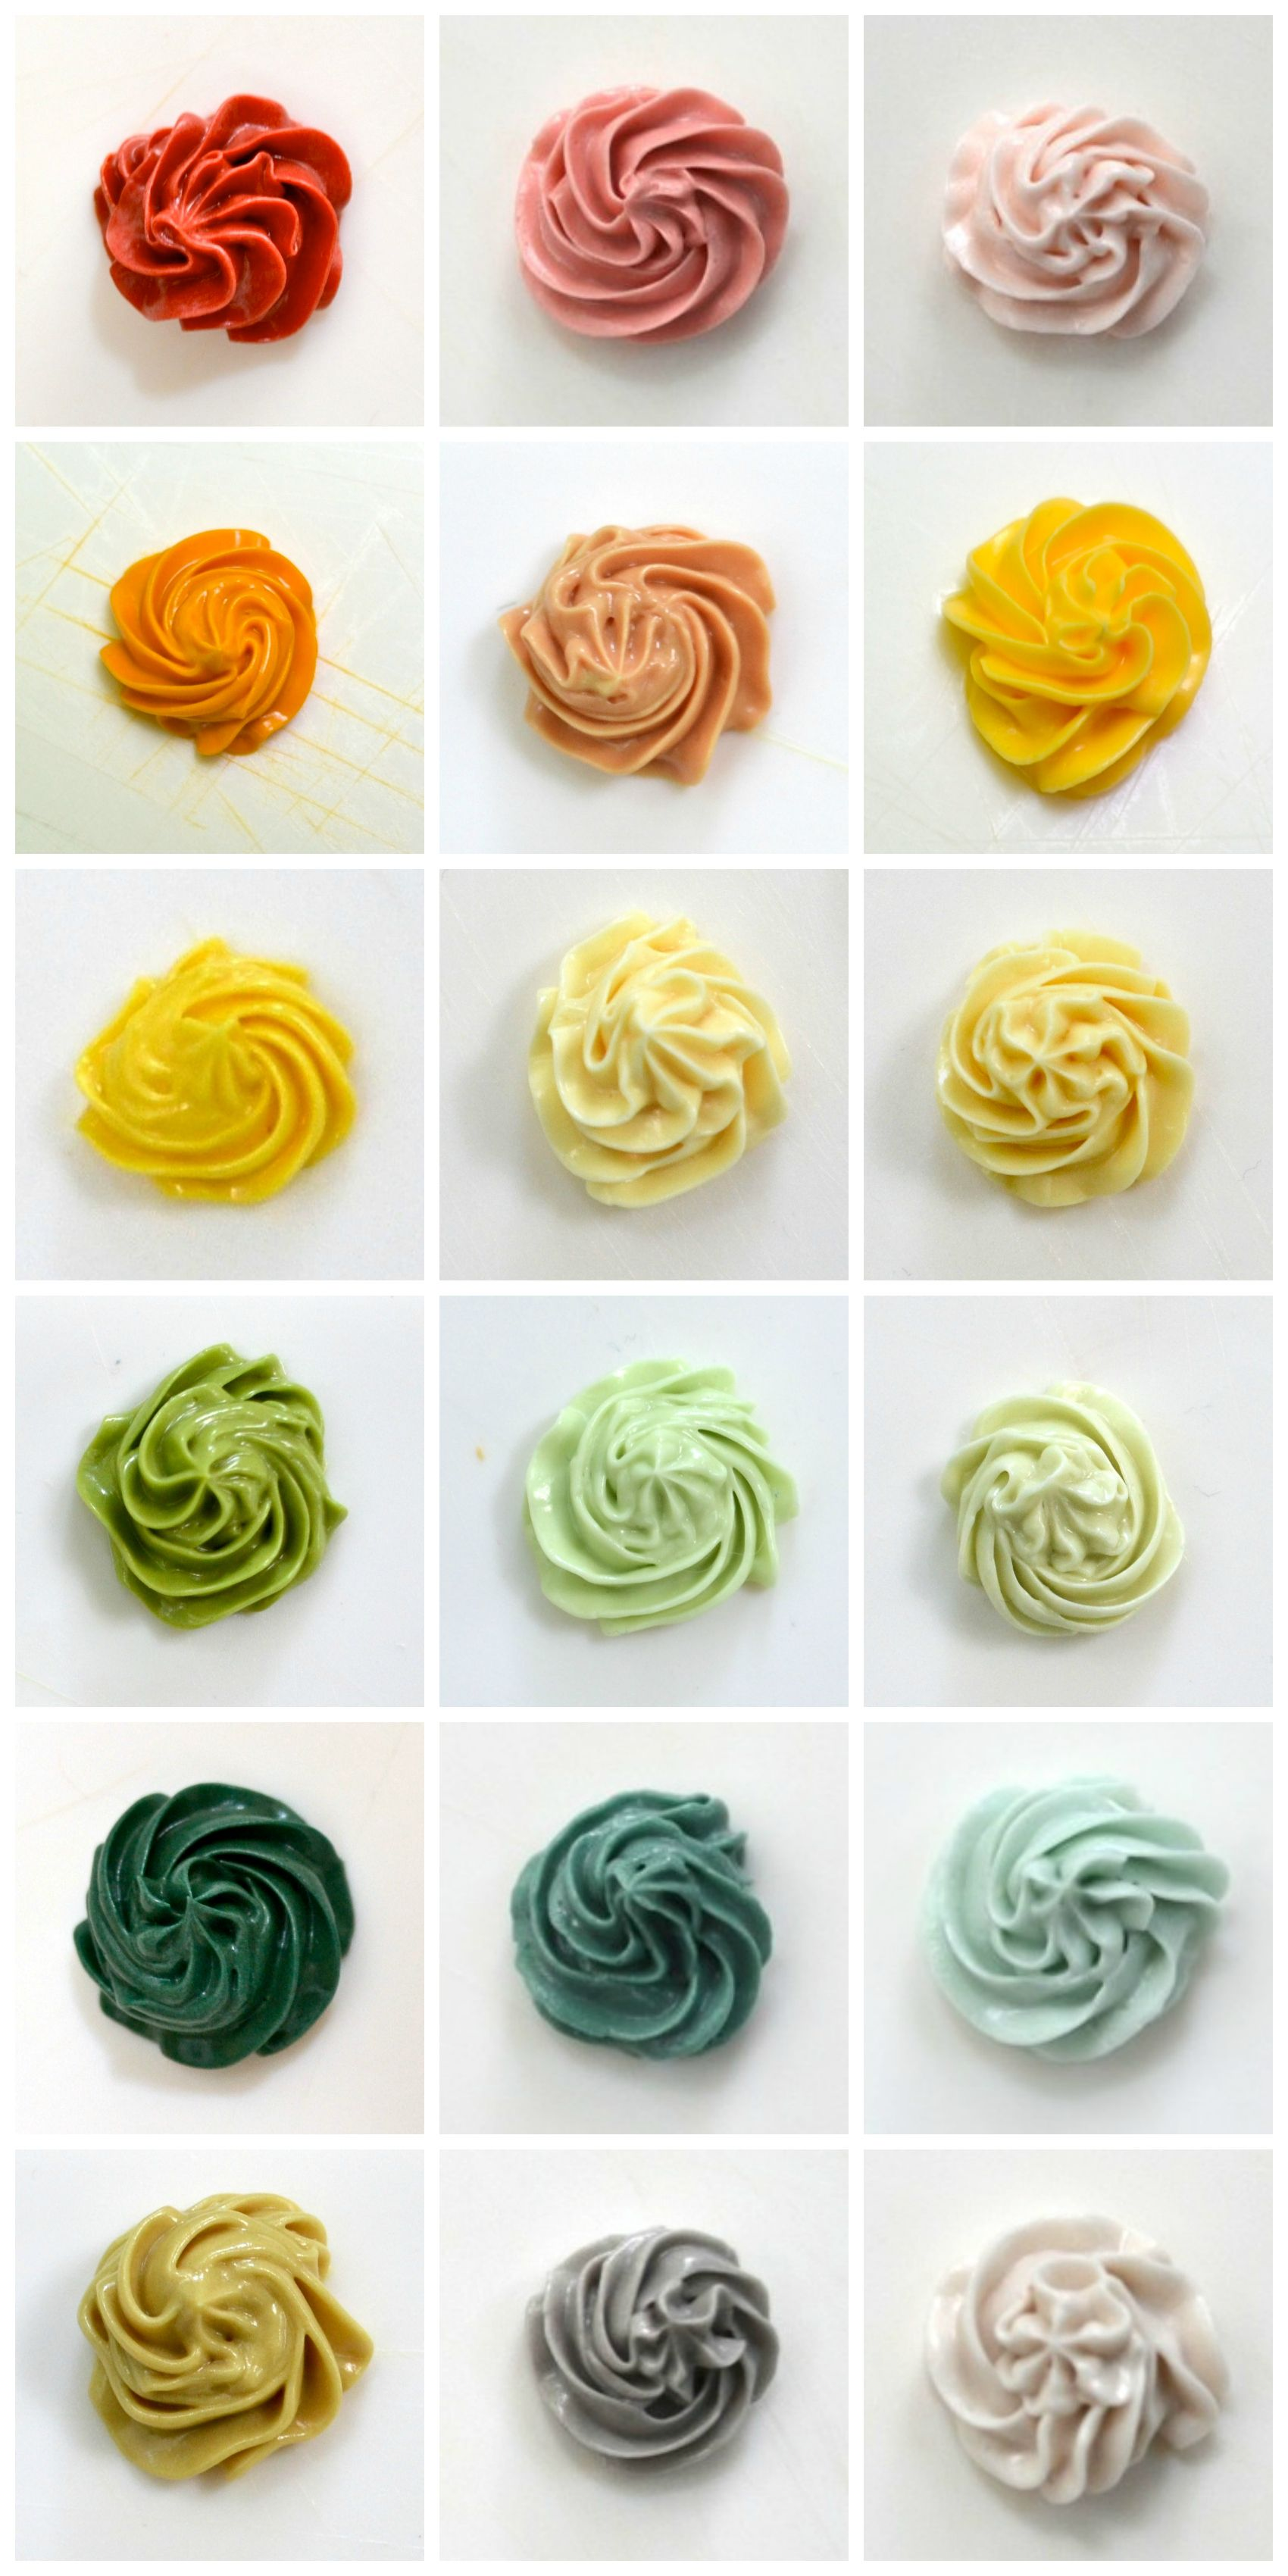 Great to use as a color reference in jewelry making too